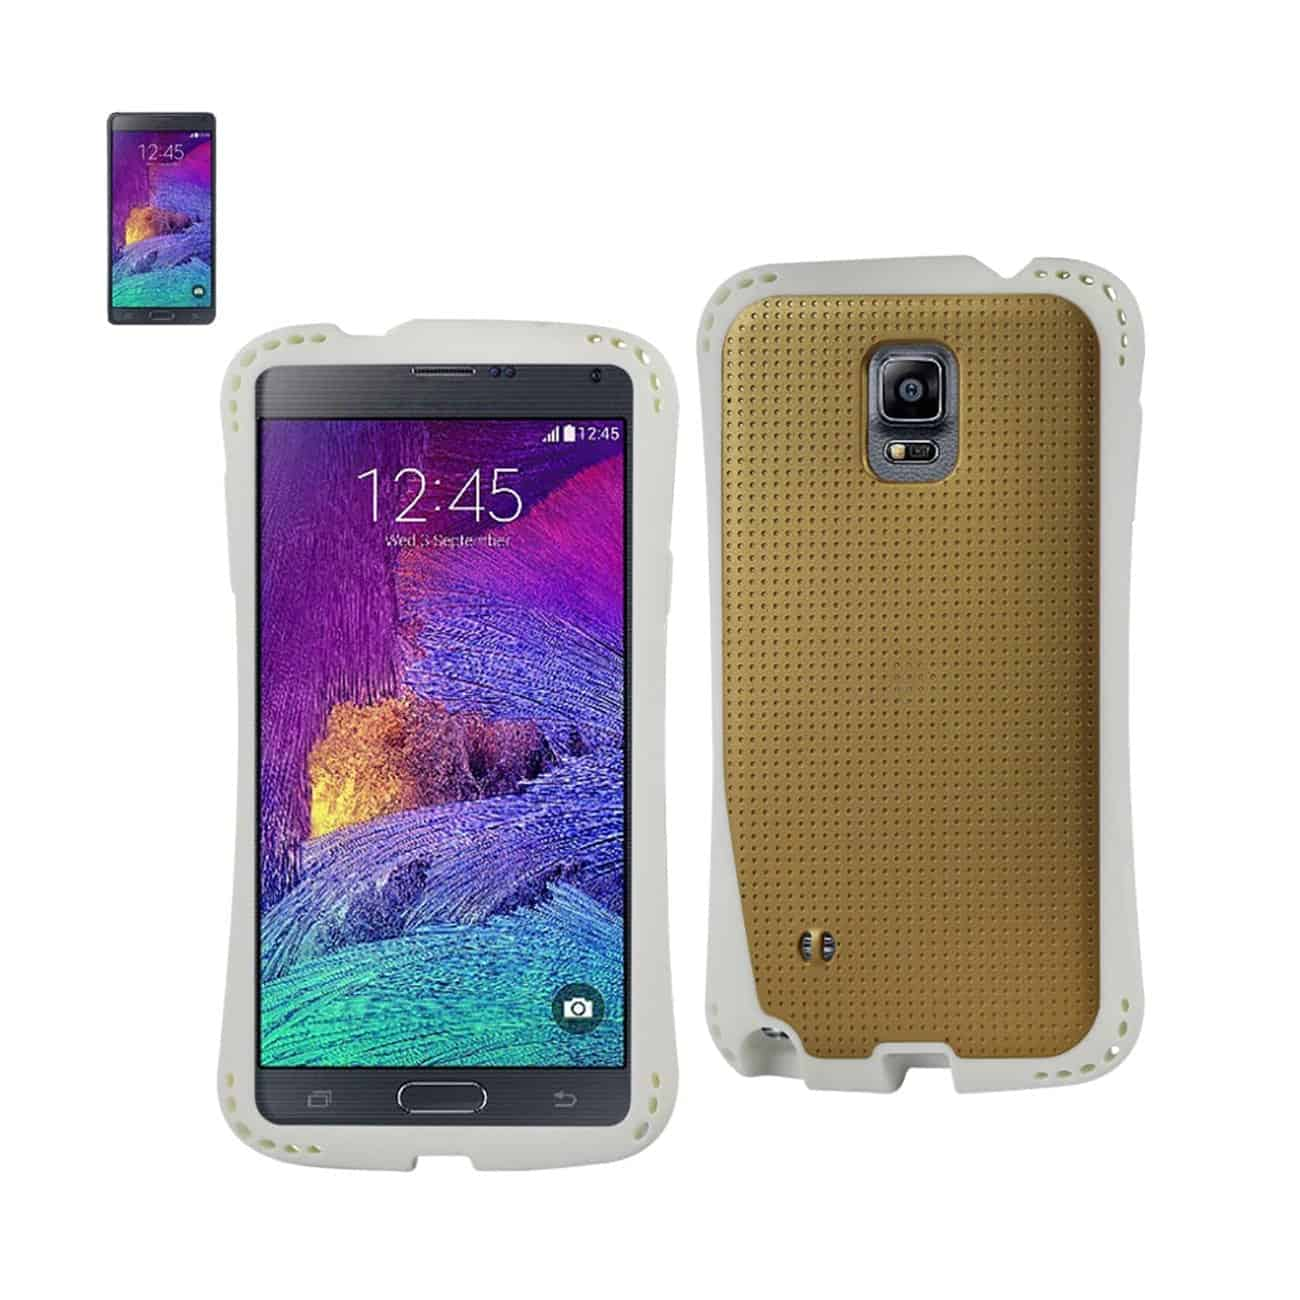 SAMSUNG GALAXY NOTE 4 DROPPROOF AIR CUSHION CASE WITH CHAIN HOLE IN GOLD